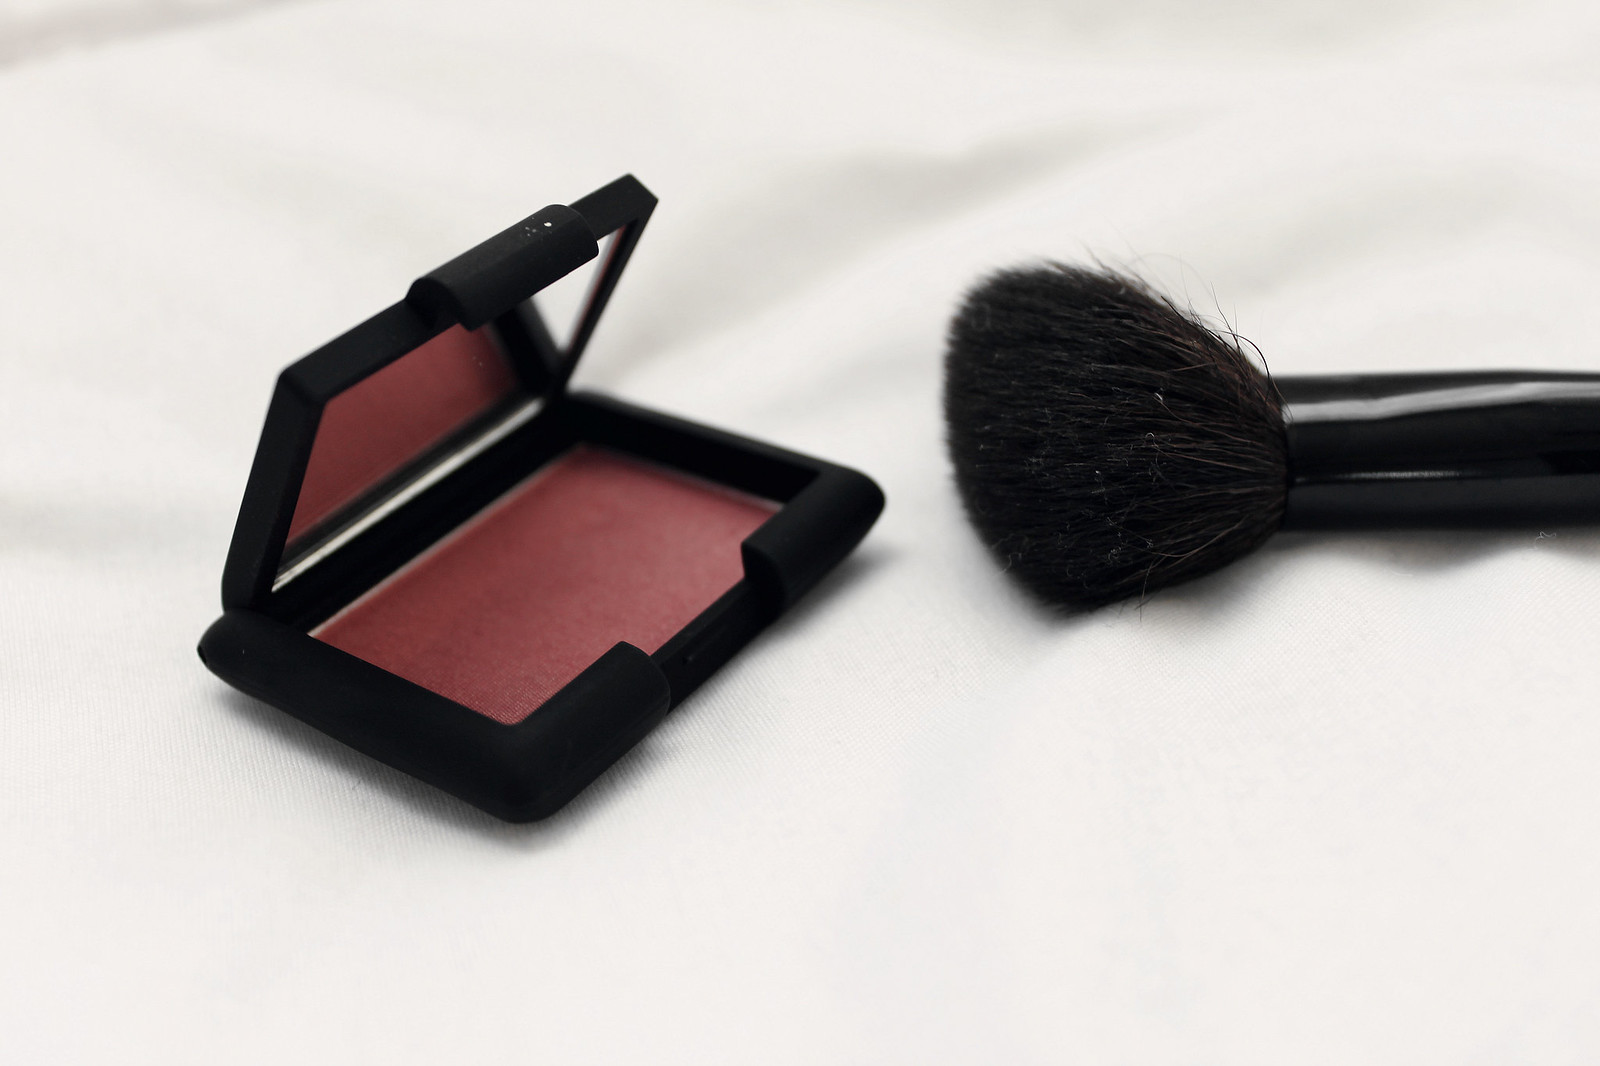 3283-nars-blush-sephora-beauty-makeup-lifestyle-elizabeeetht-clothestoyouuu